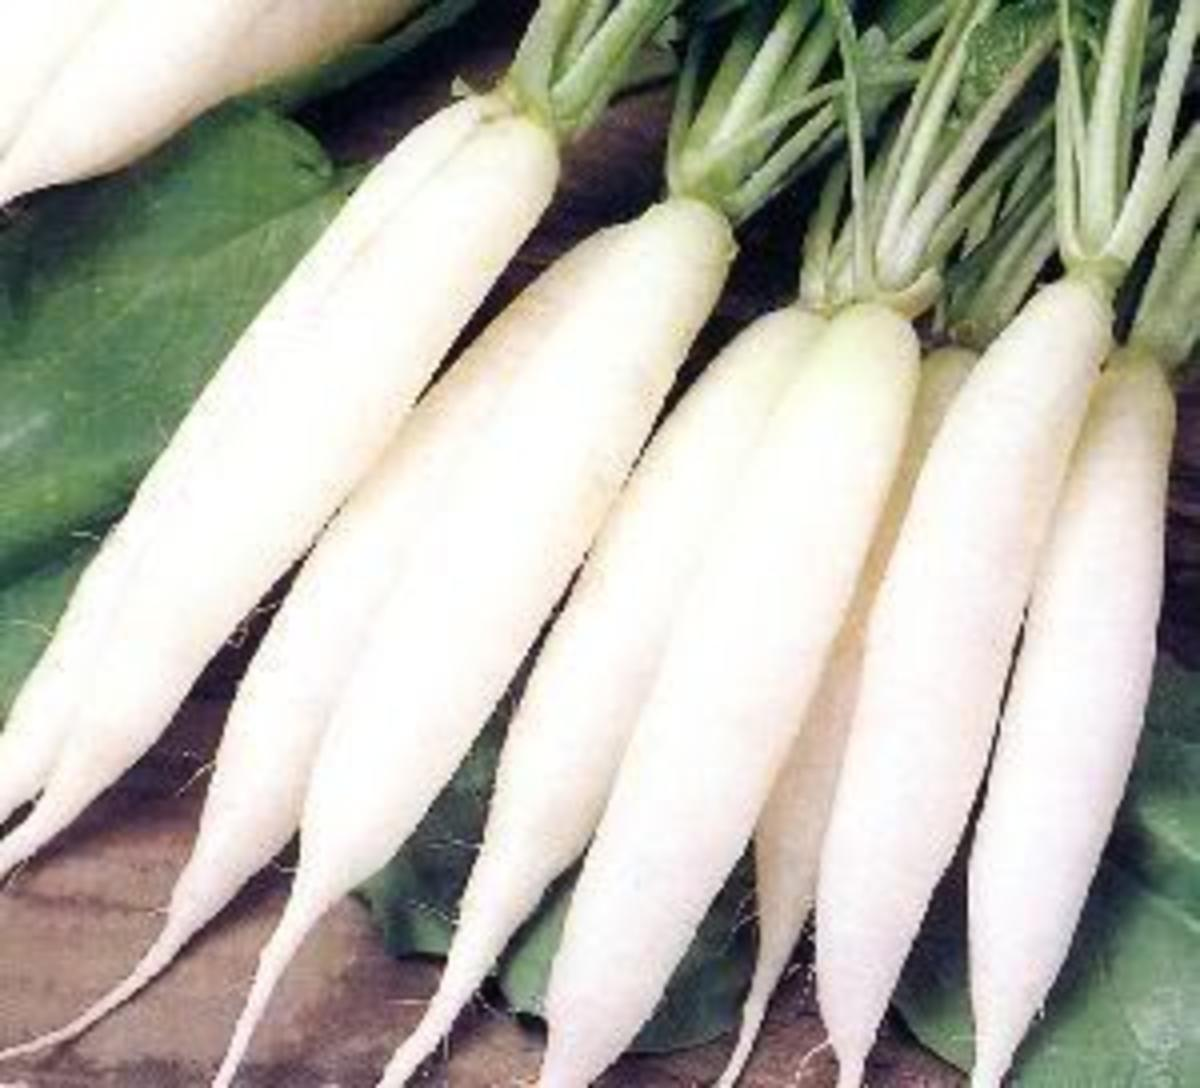 Labanos or White Radish (Photo Credit: misspaddy photobucket)